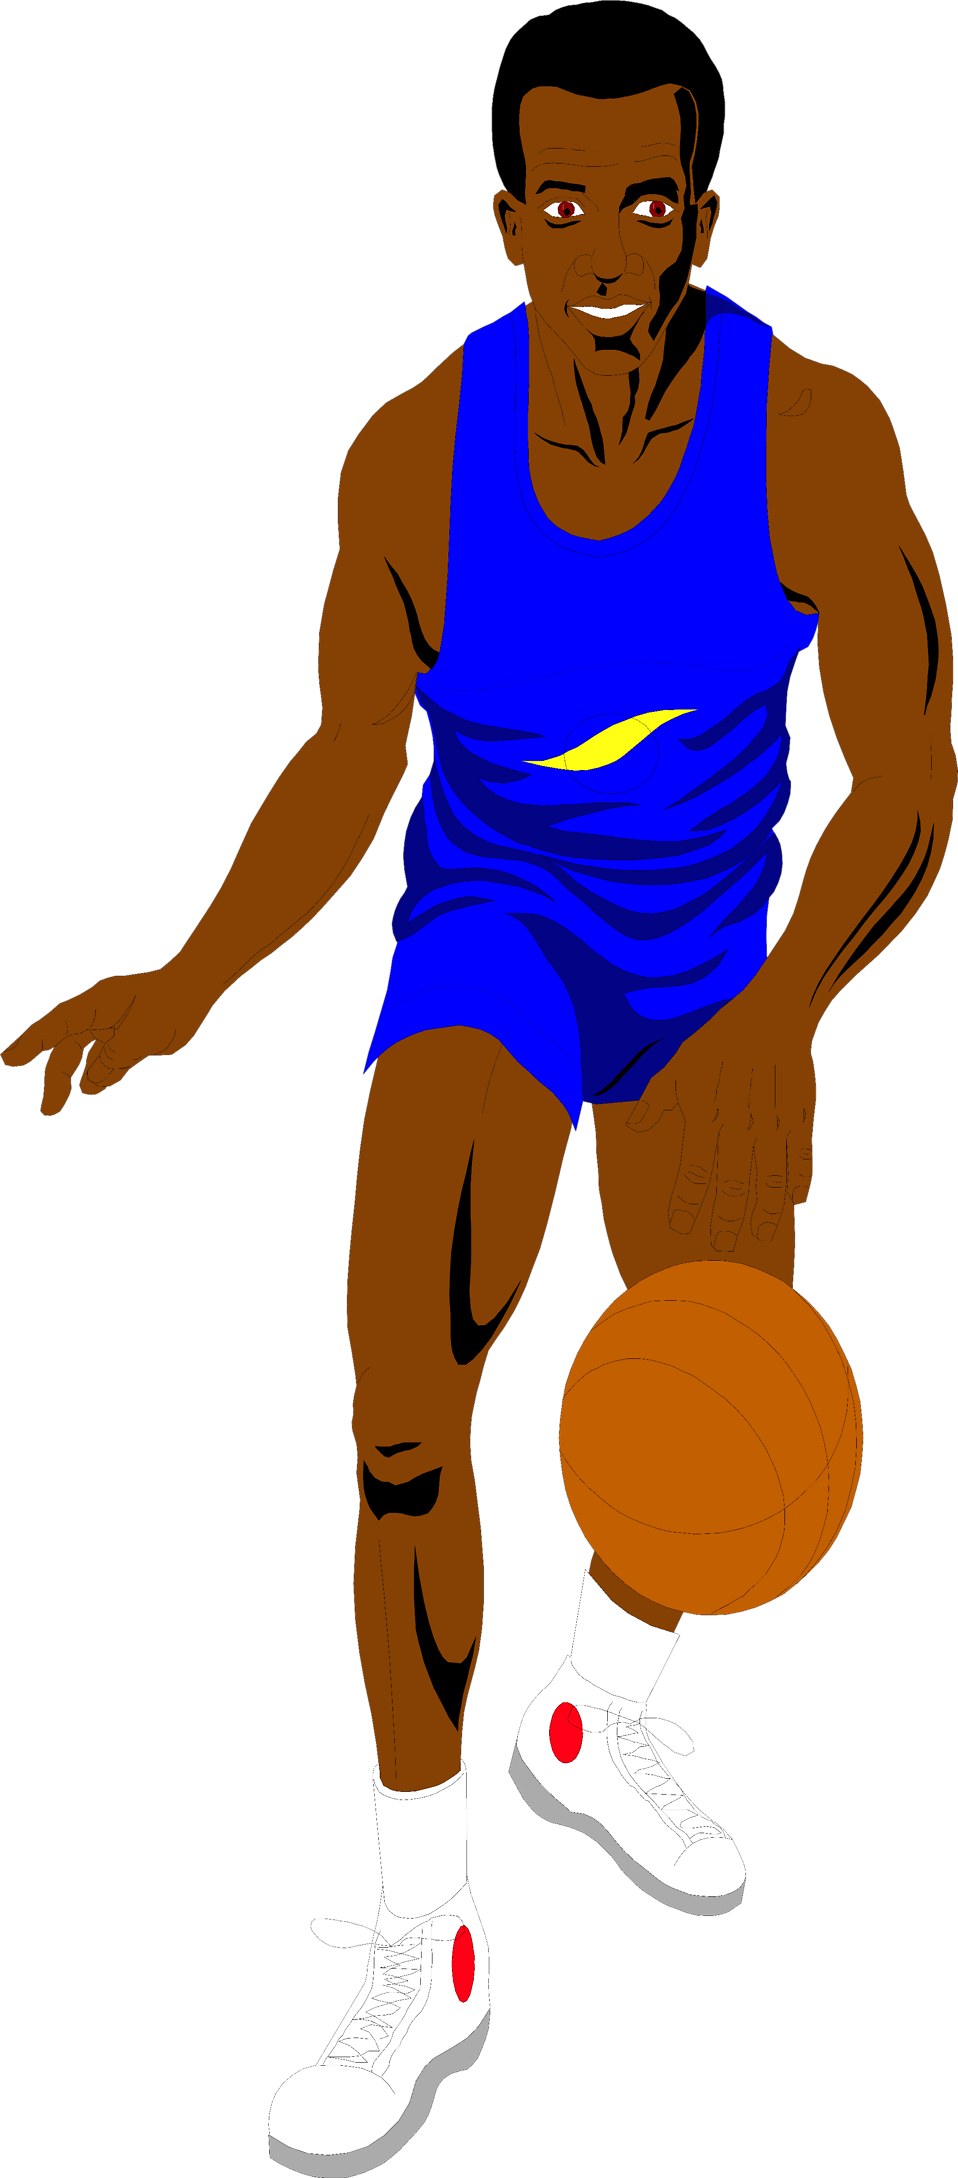 Passing basketball clipart image transparent Basketball | Free Stock Photo | Illustration of an African American ... image transparent